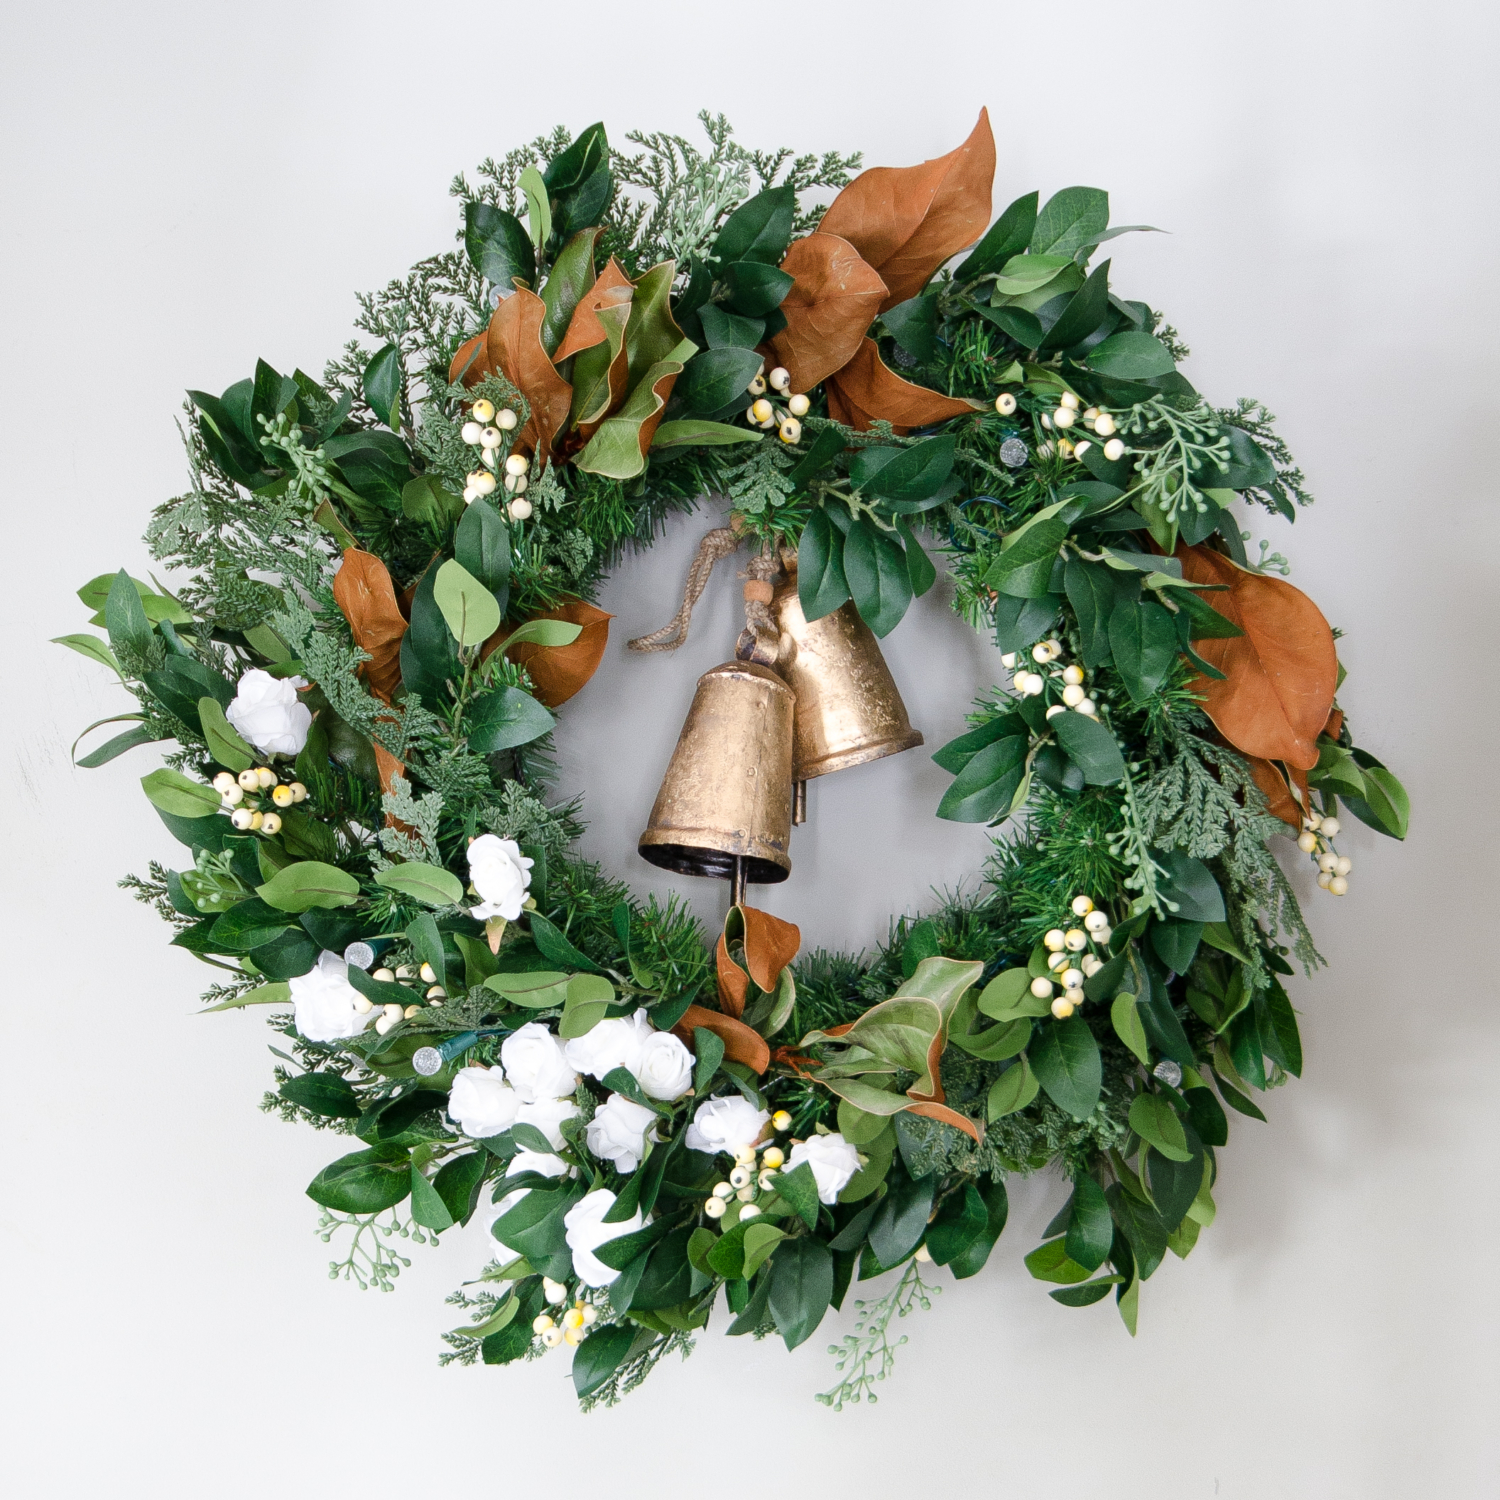 Christmas wreath with magnolia, white berries, white flowers, and gold bells